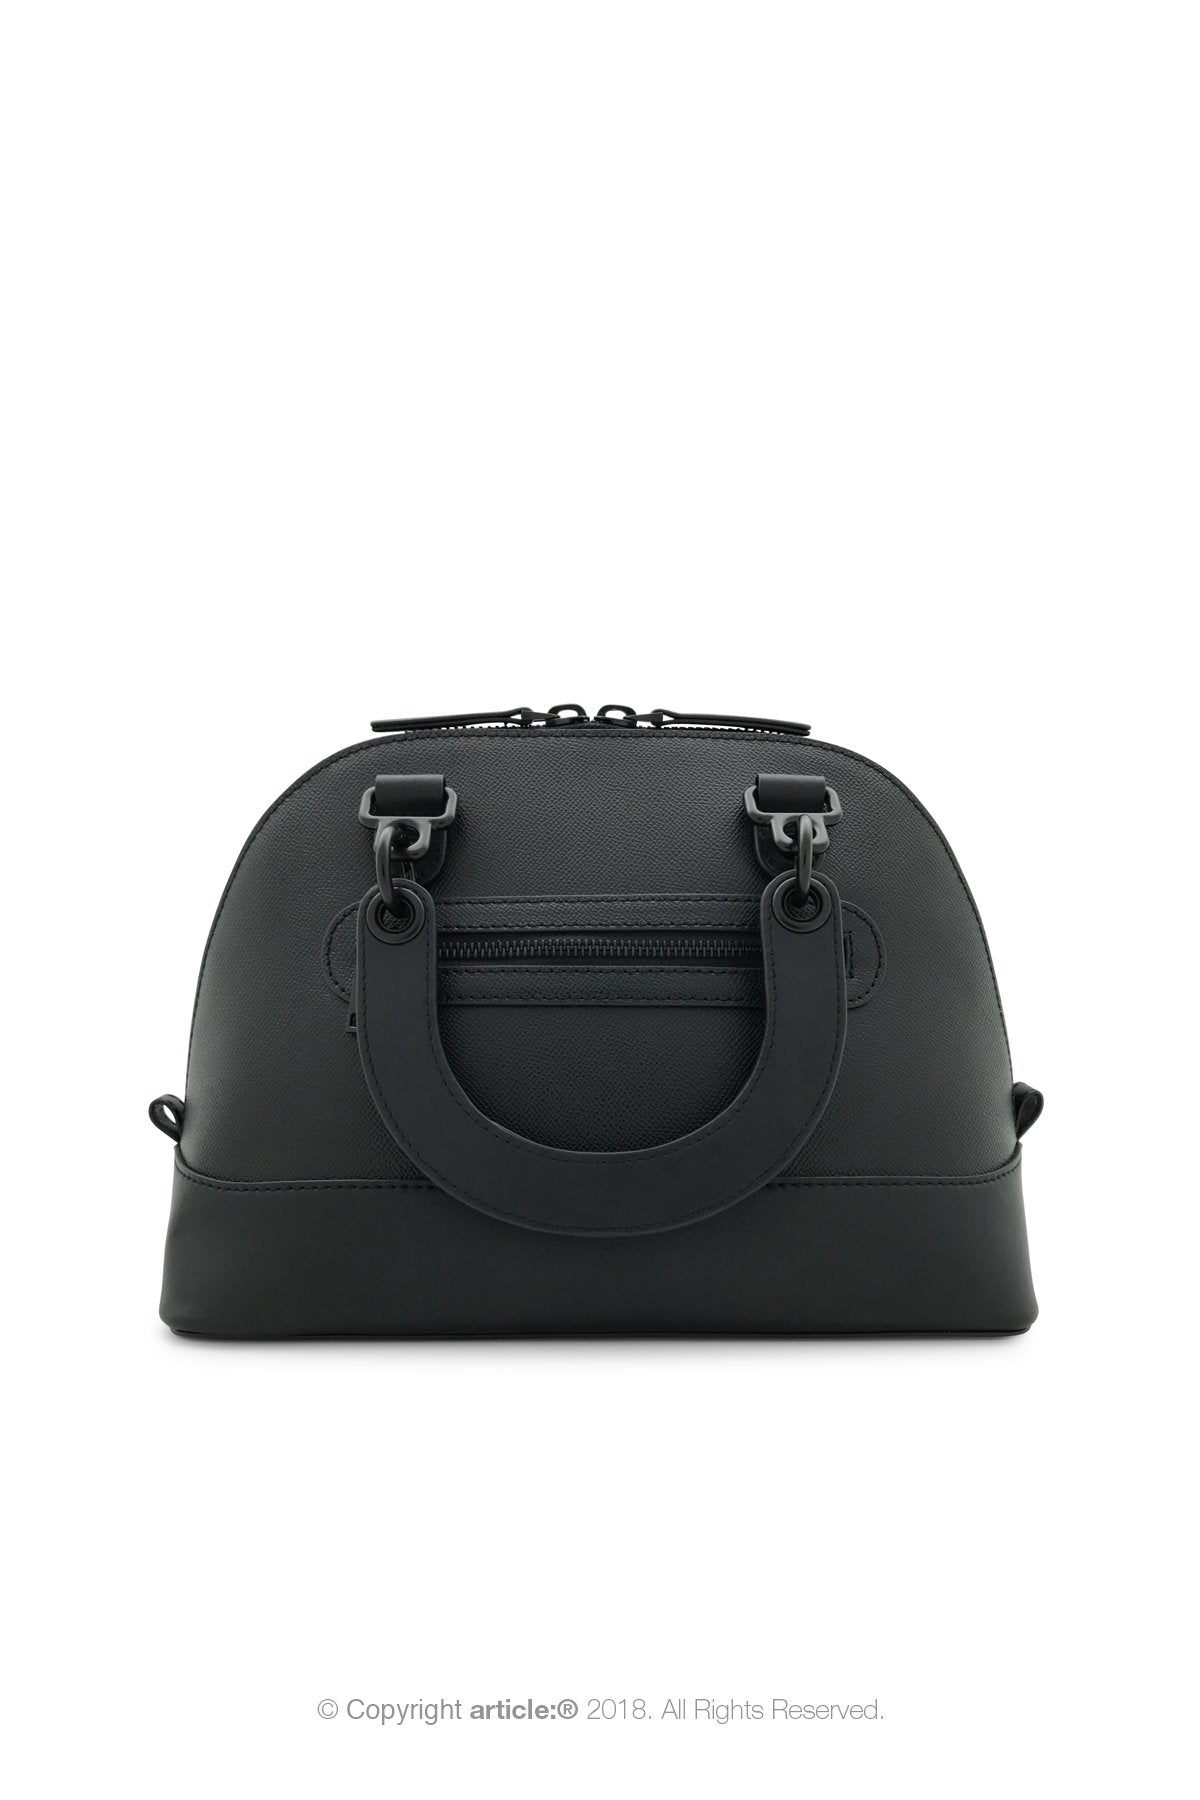 article: #140 Handbag Top Handle - Noir